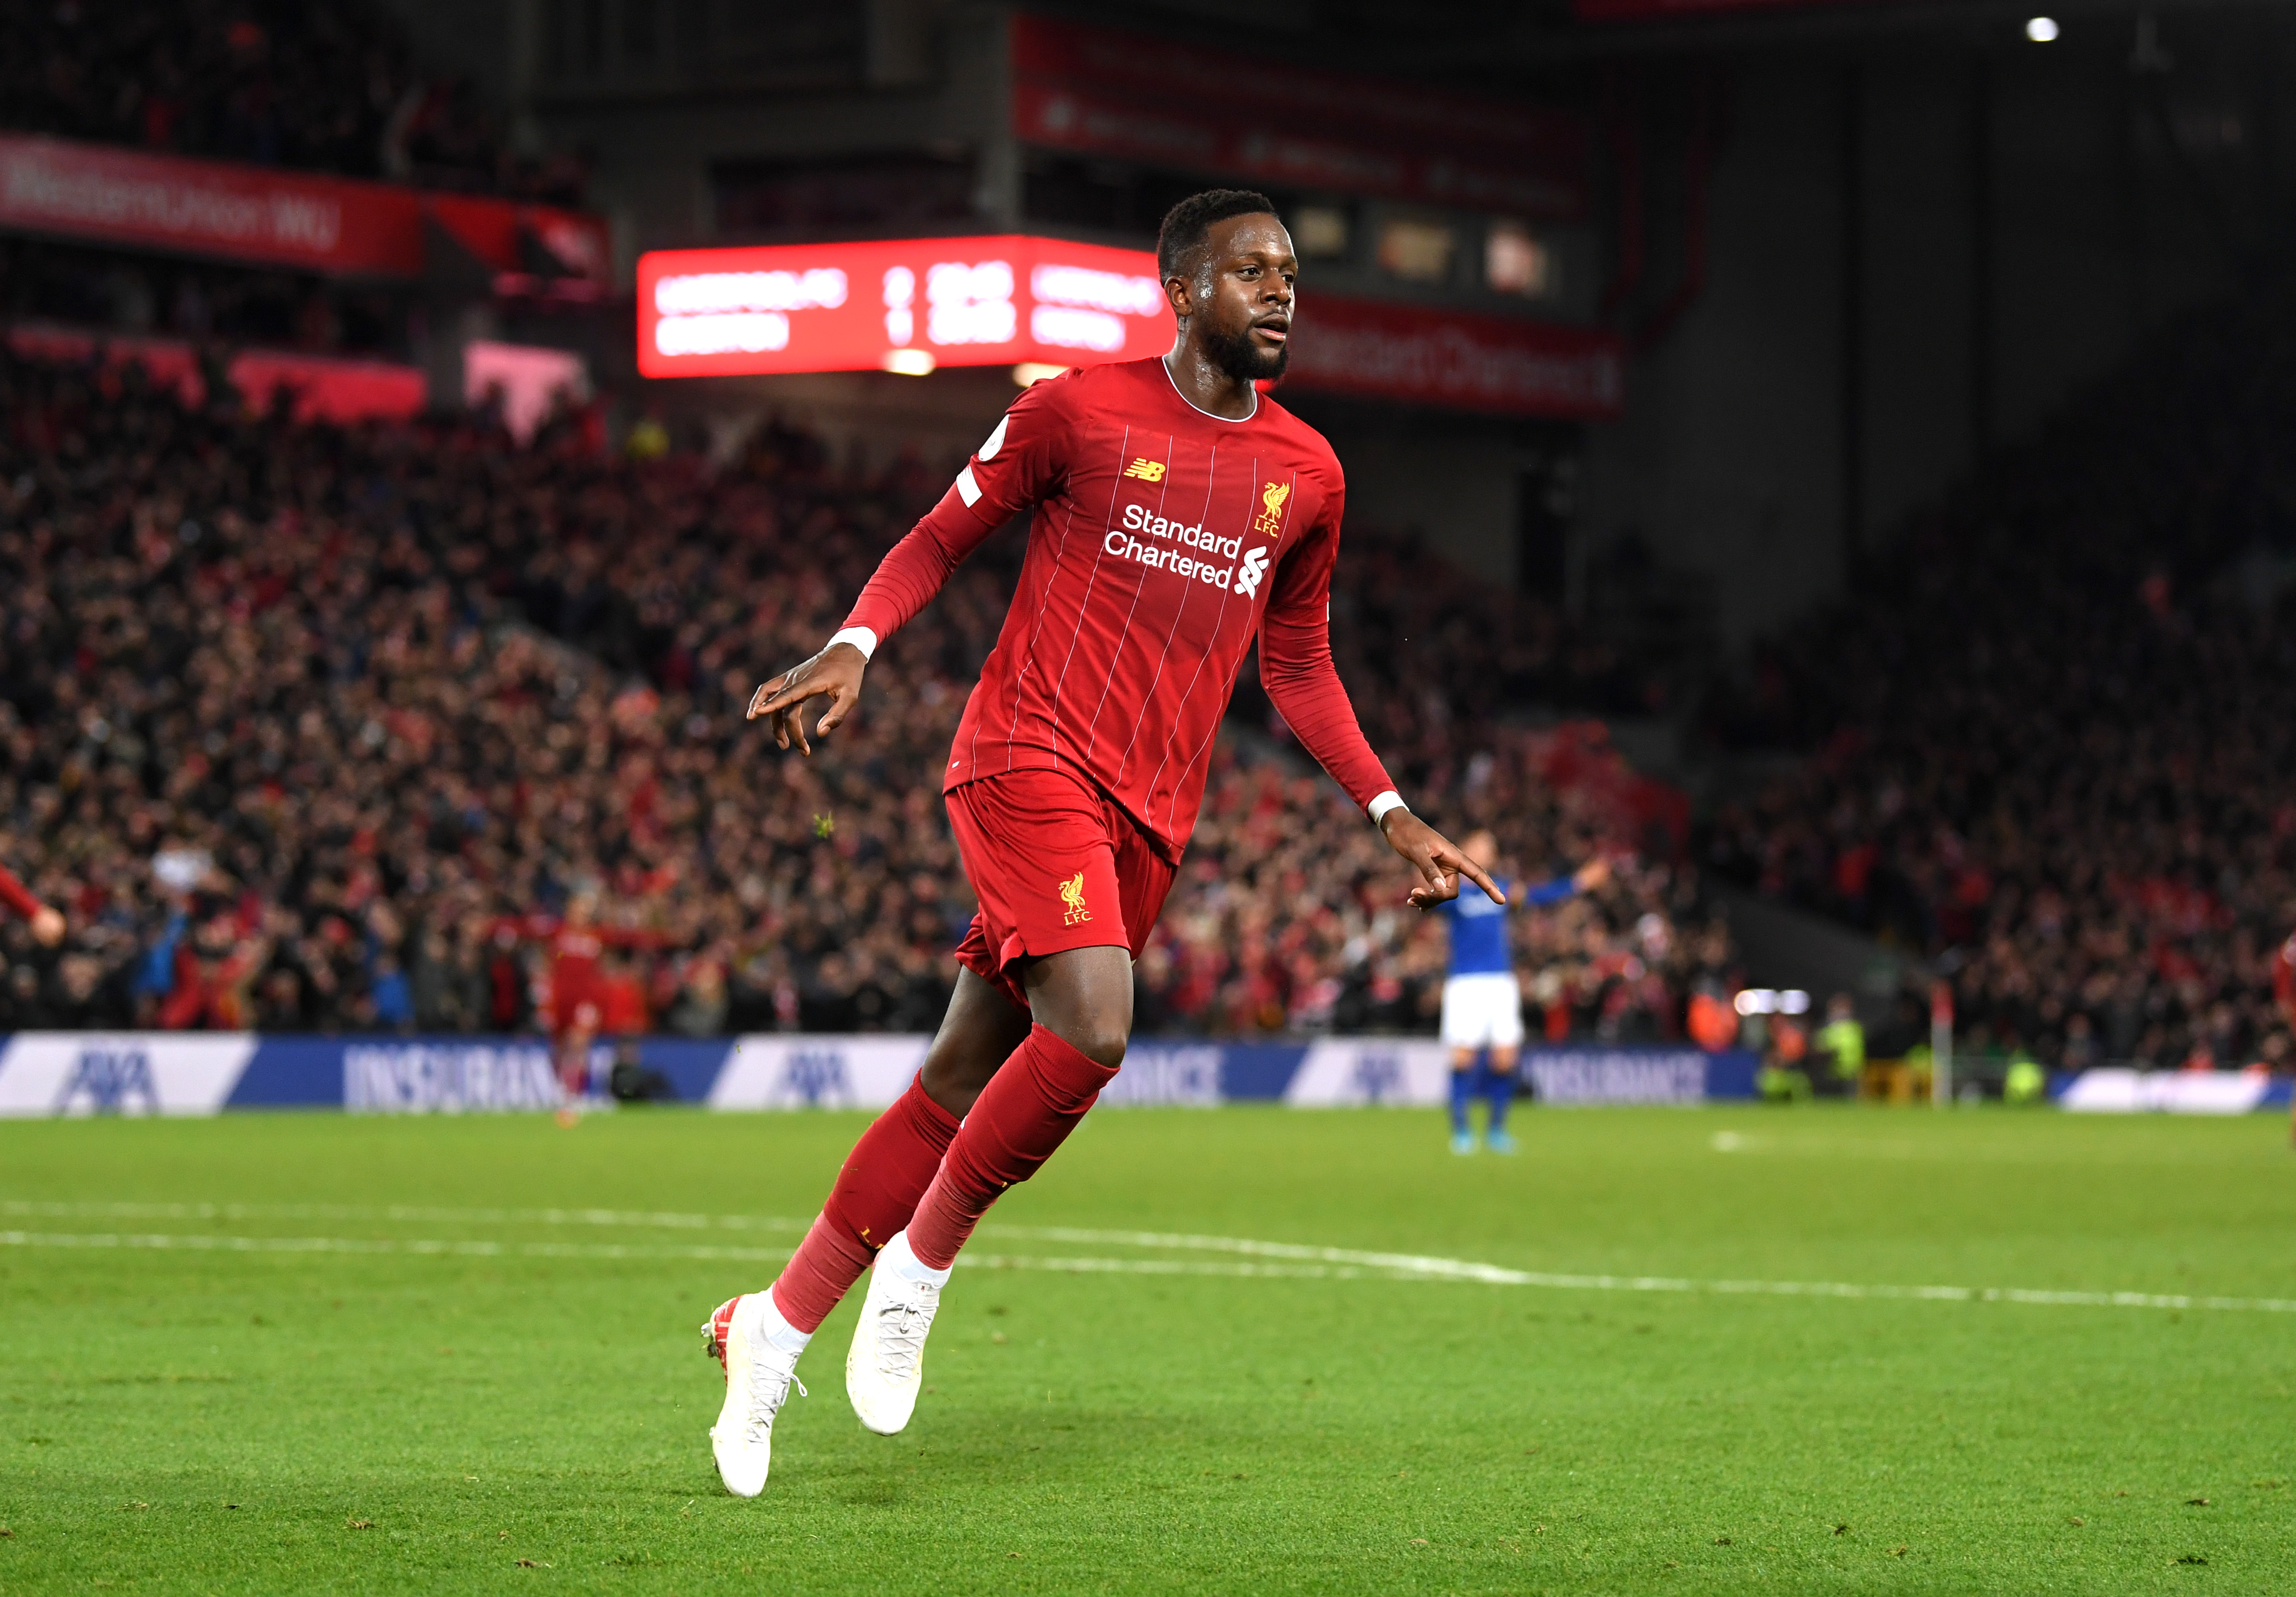 Liverpool's underdog who could stay in the starting XI after excellent Everton display - opinion